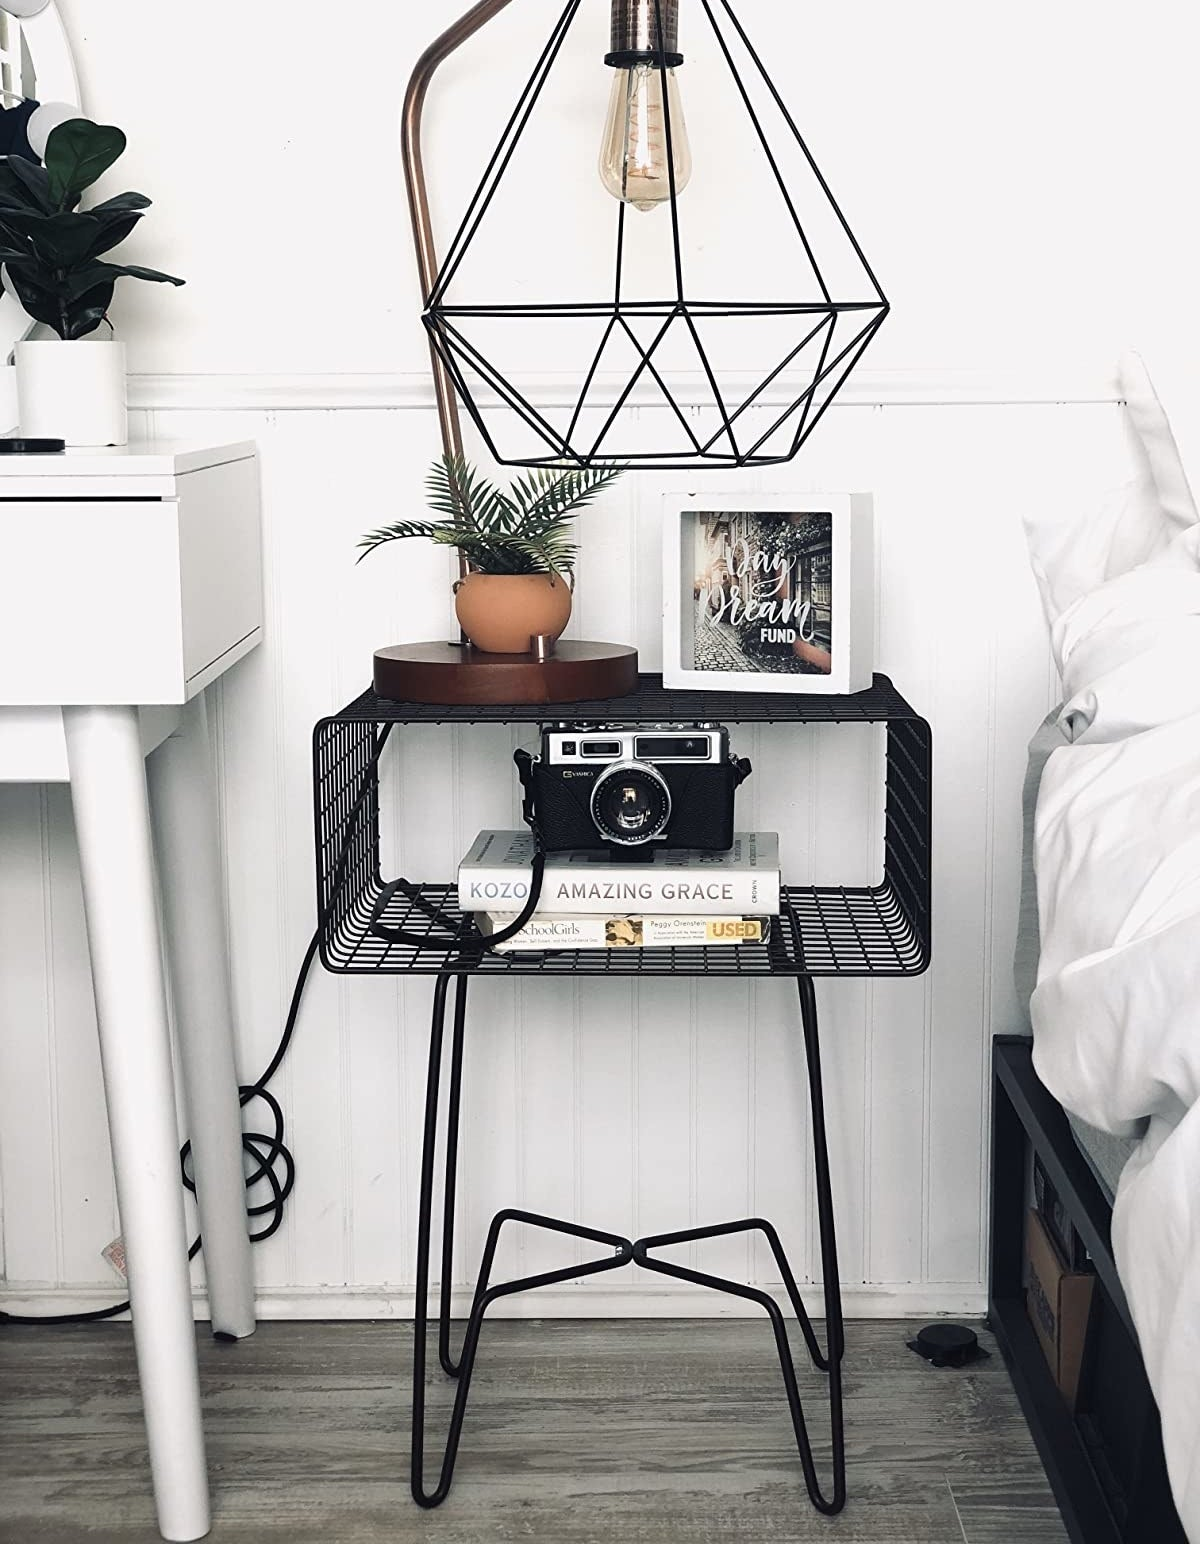 reviewer image of the black mDesign Modern desk in a white minimalist bedroom with a black geometric lamp on its surface